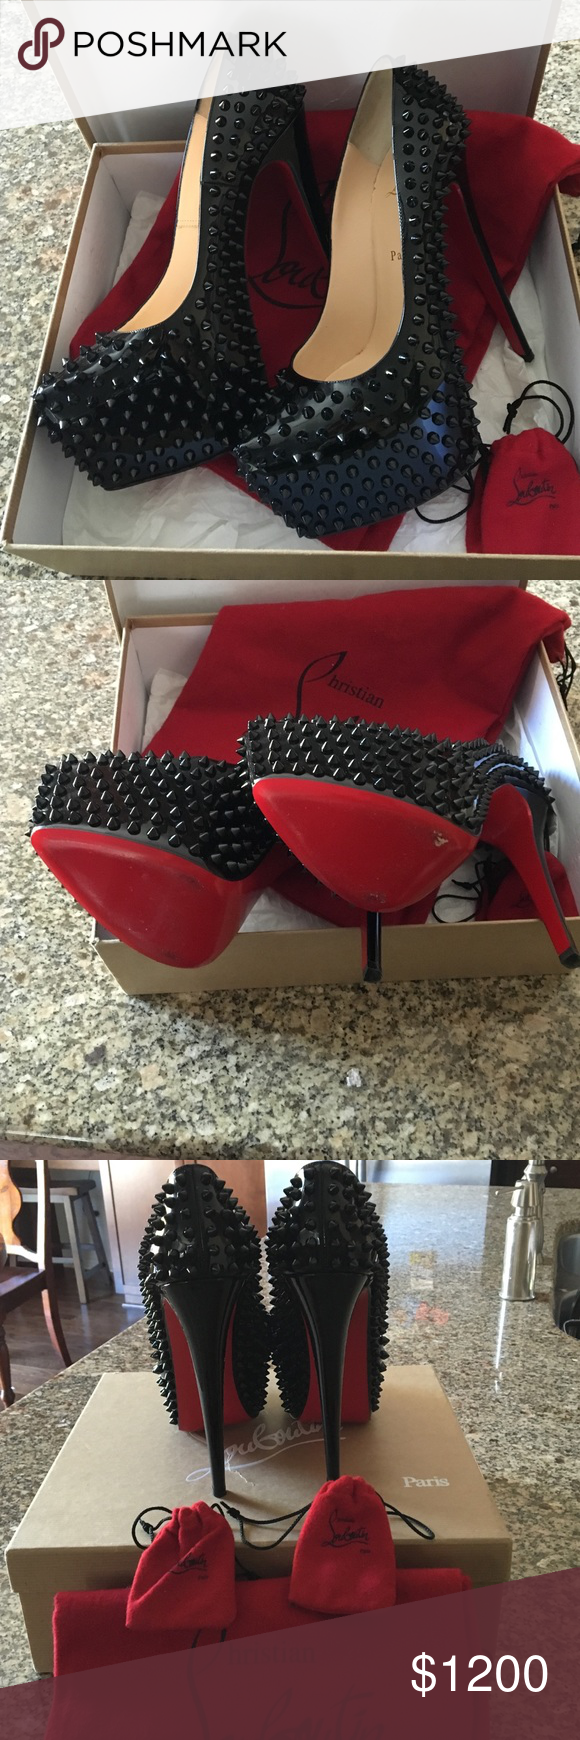 Christian Louboutin Daffodil spiked heels Authentic Beautiful black spiked patent leather daffodil 160 mm heels, like new, includes box, dust bags, extra heel taps and extra spikes. Please make sure you know your size in Louboutin heels as they run small. No trades Christian Louboutin Shoes Heels